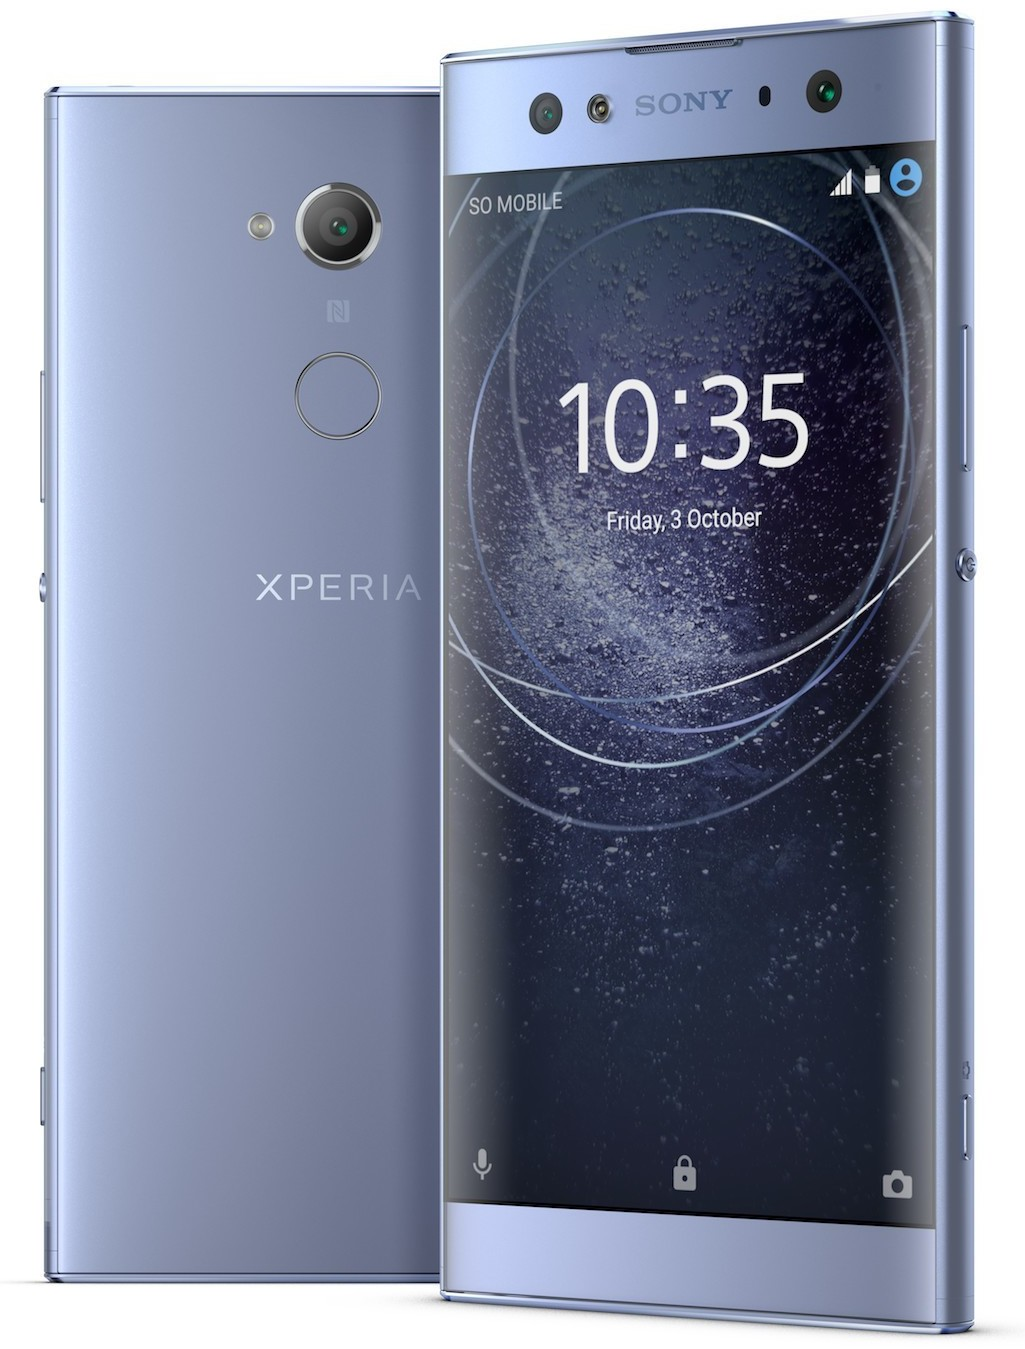 sony xperia xa2 ultra 64gb dual sim specs and price phonegg. Black Bedroom Furniture Sets. Home Design Ideas